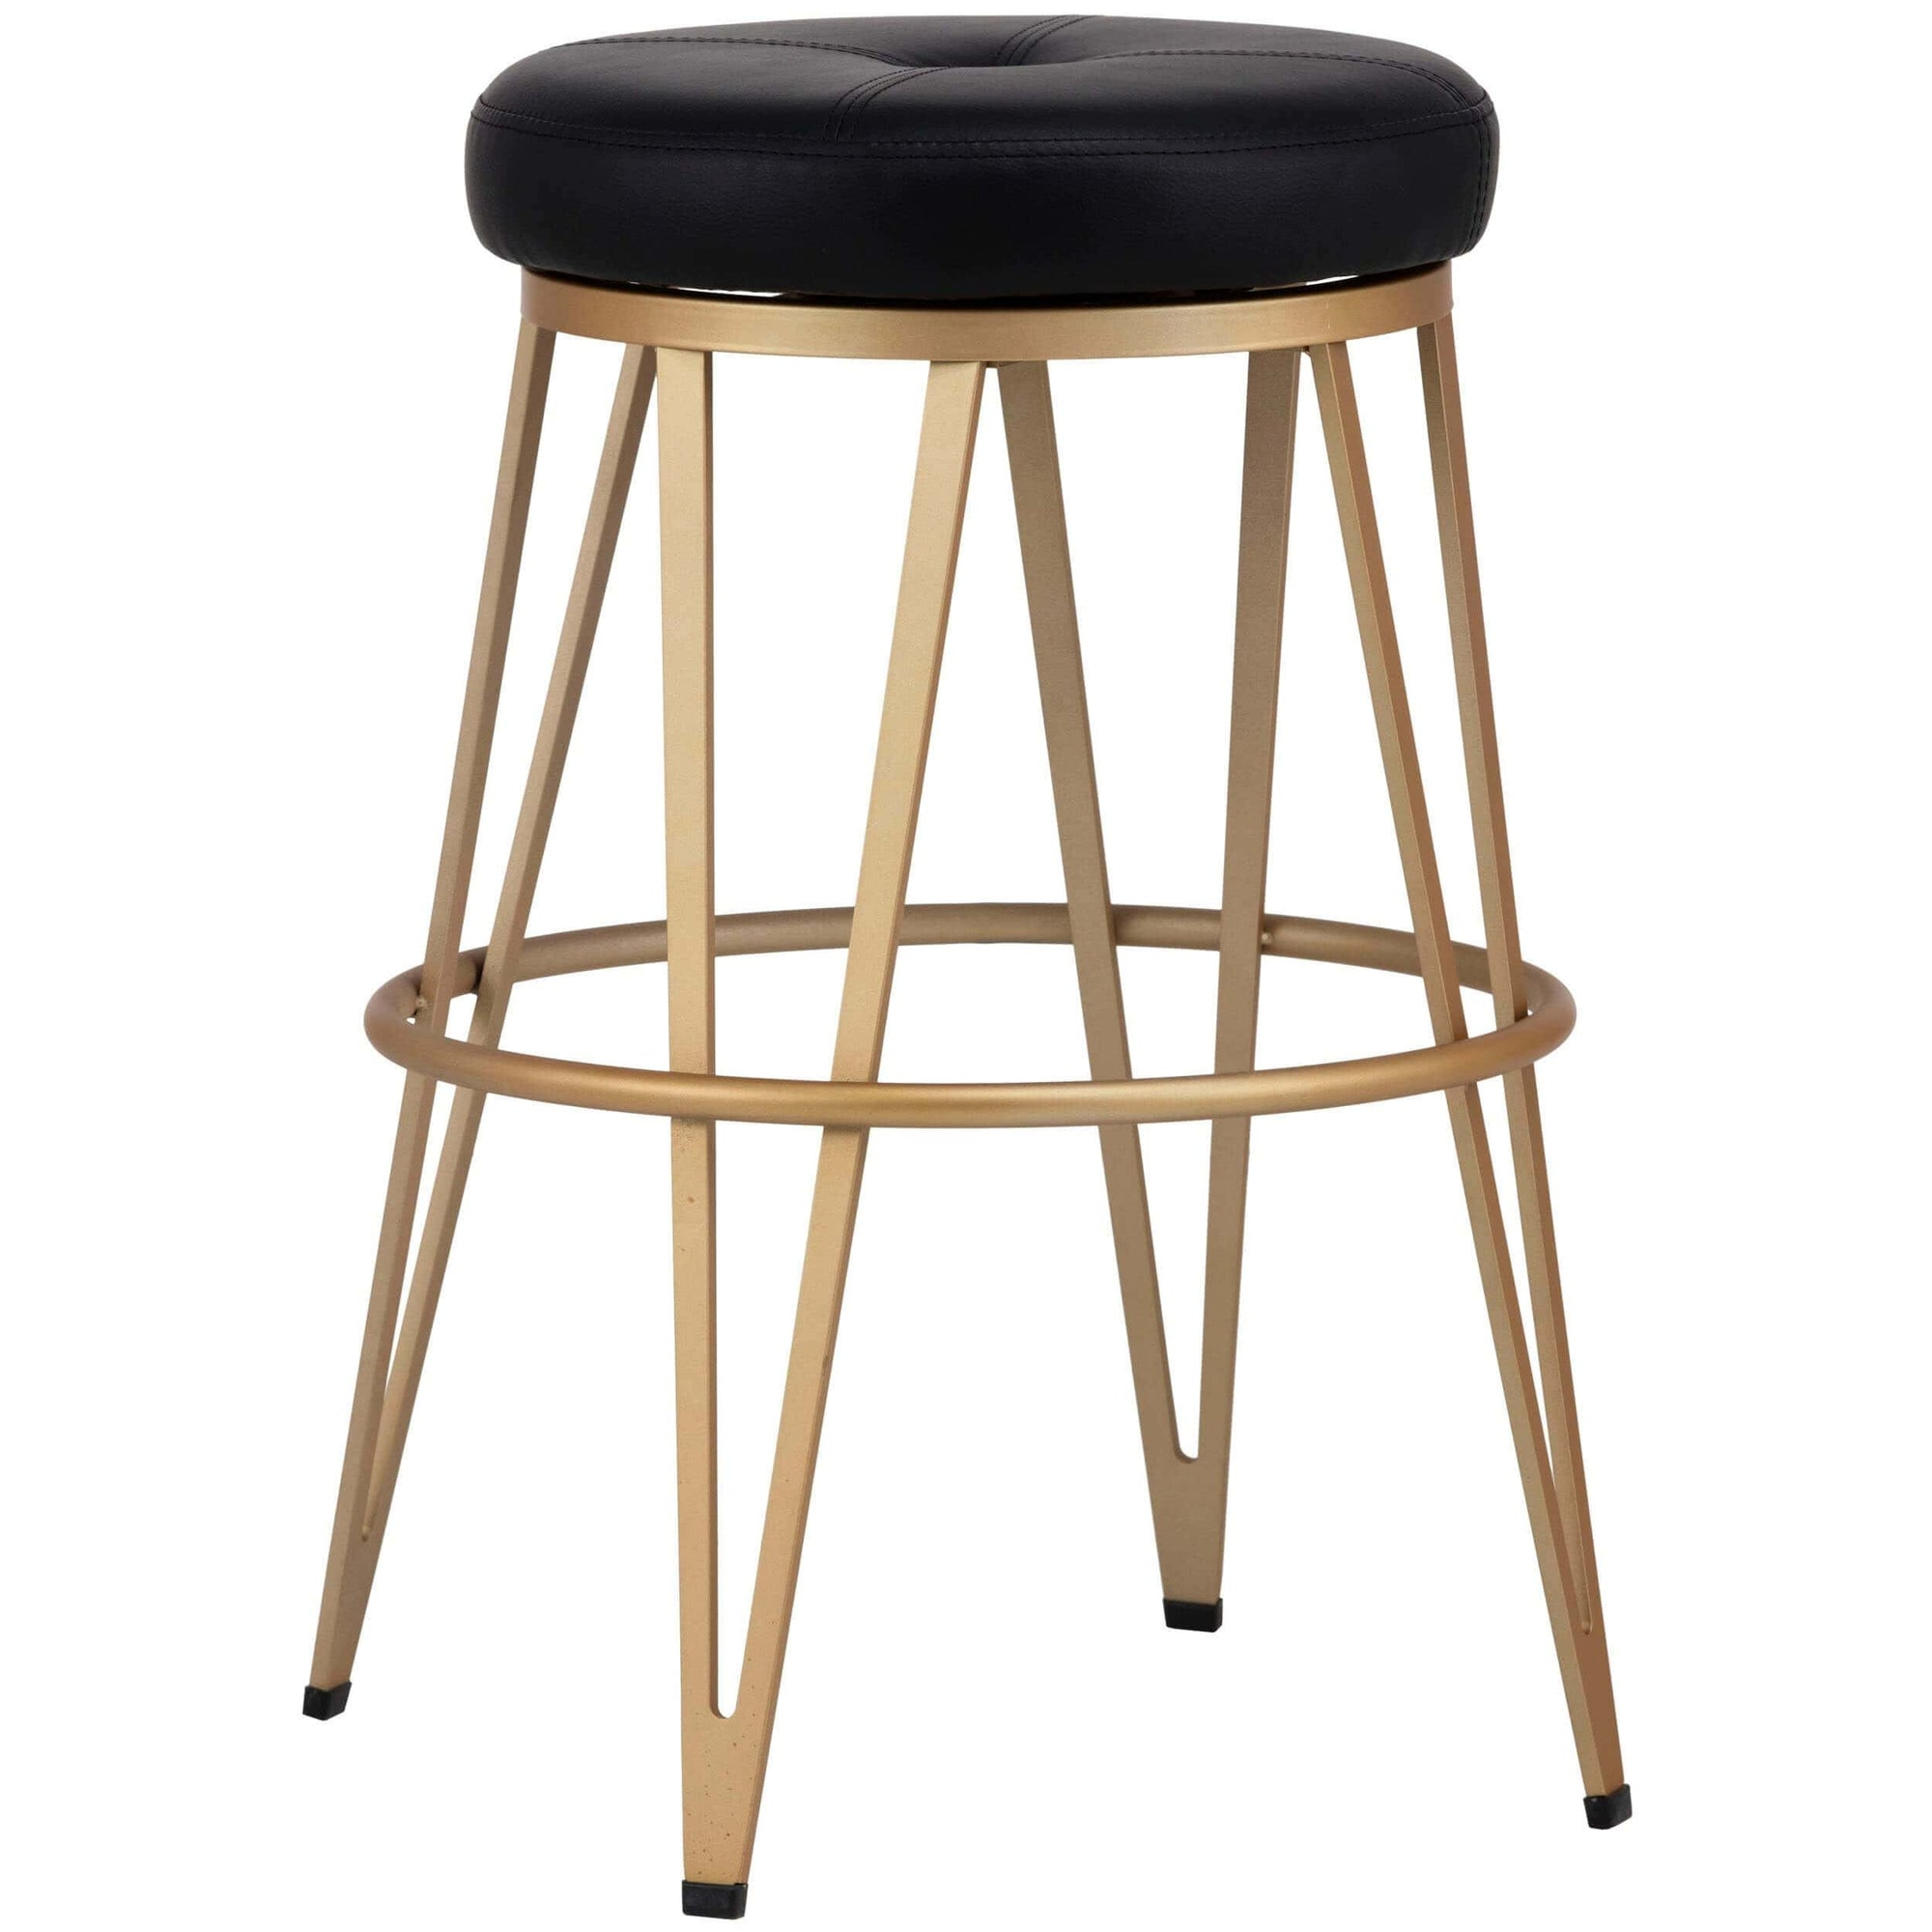 Awesome Matthews Swivel Counter Stool Onyx Unemploymentrelief Wooden Chair Designs For Living Room Unemploymentrelieforg